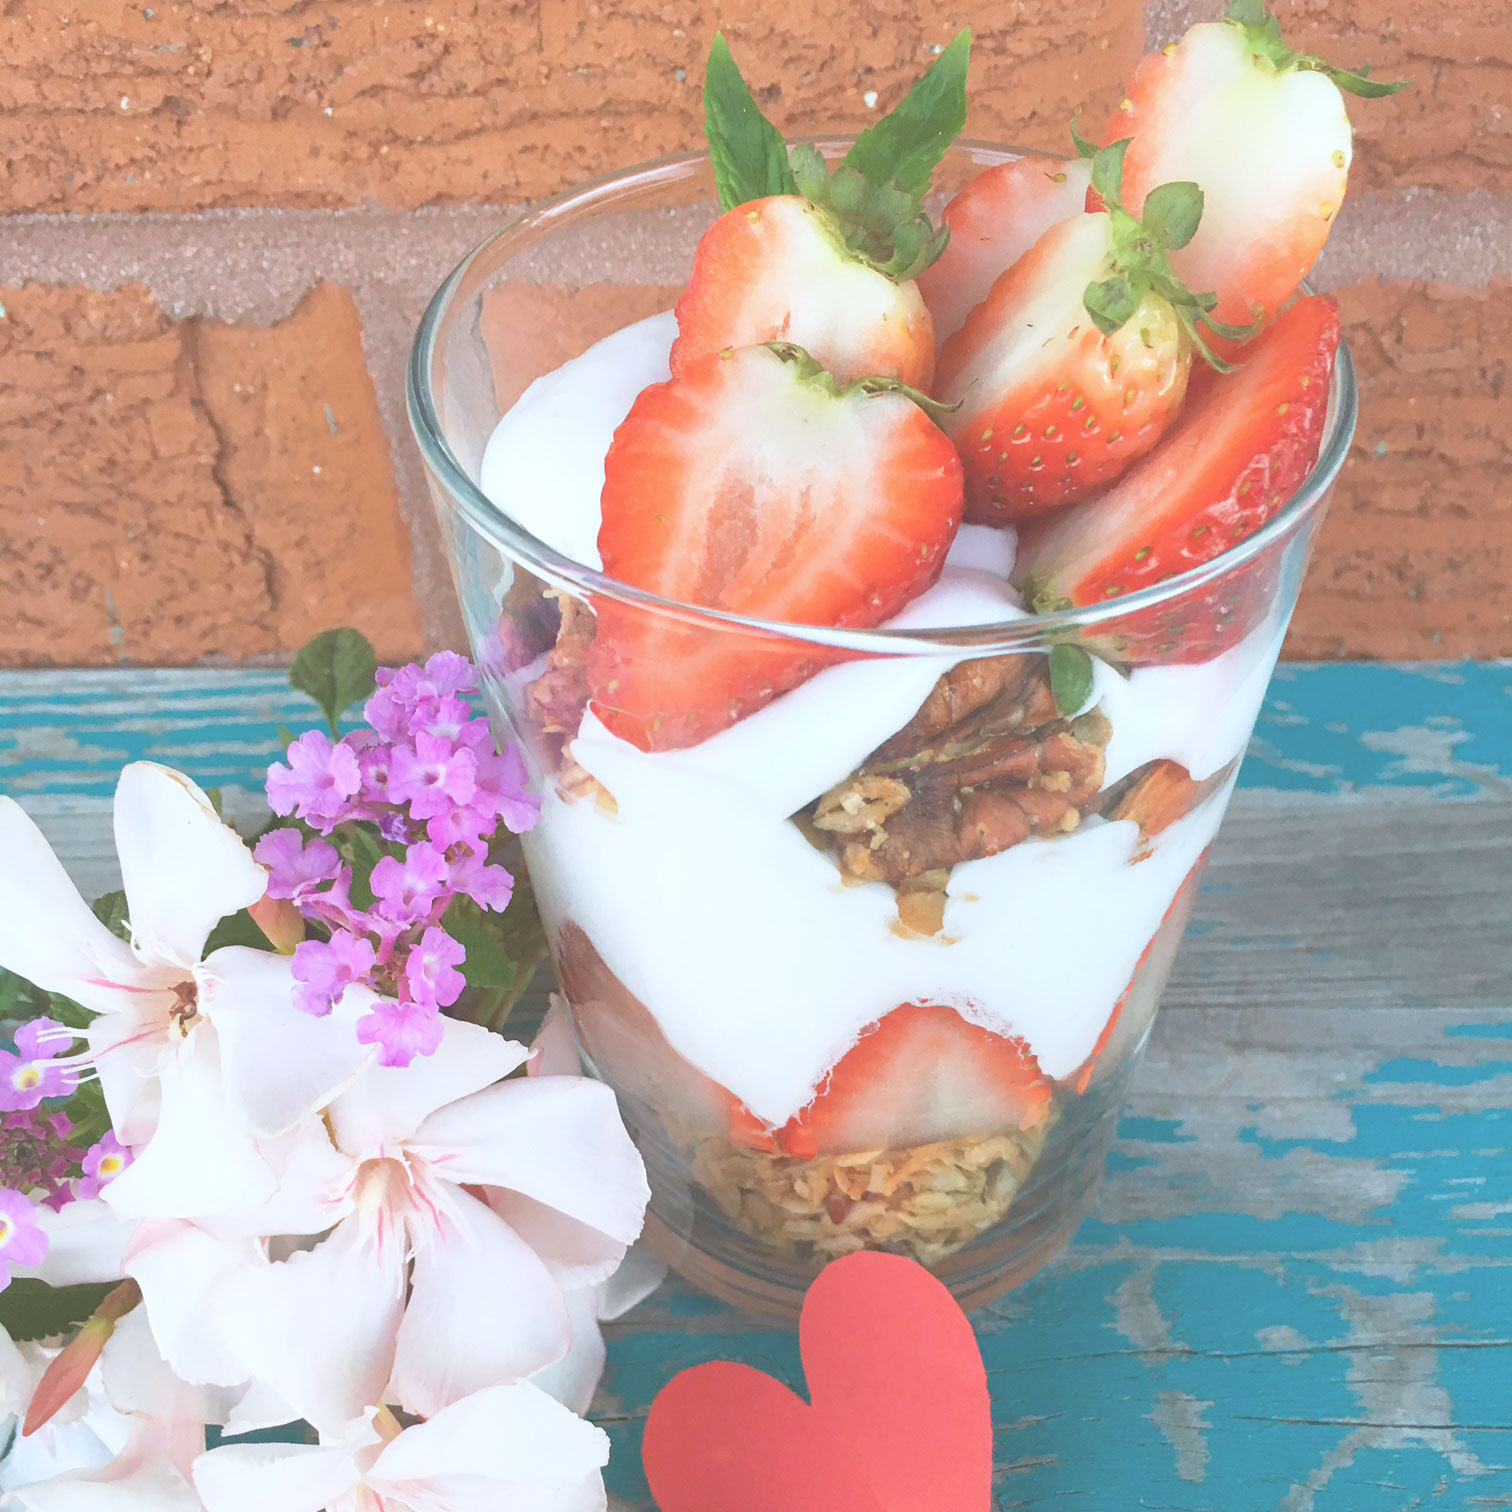 Strawberry Coconut Parfait with homemade Granola